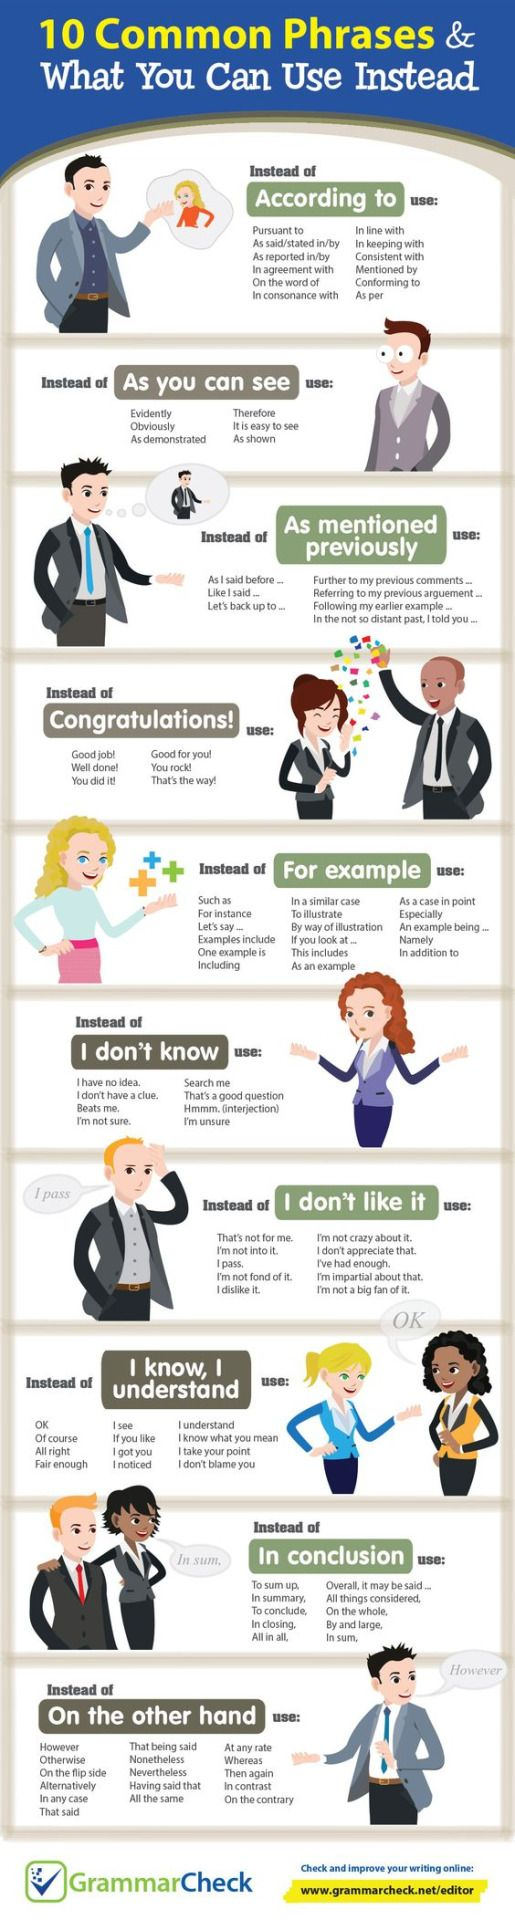 "hellolearnenglishwithantriparto: "" 10 Common Phrases and What to Use Instead #learnenglish """